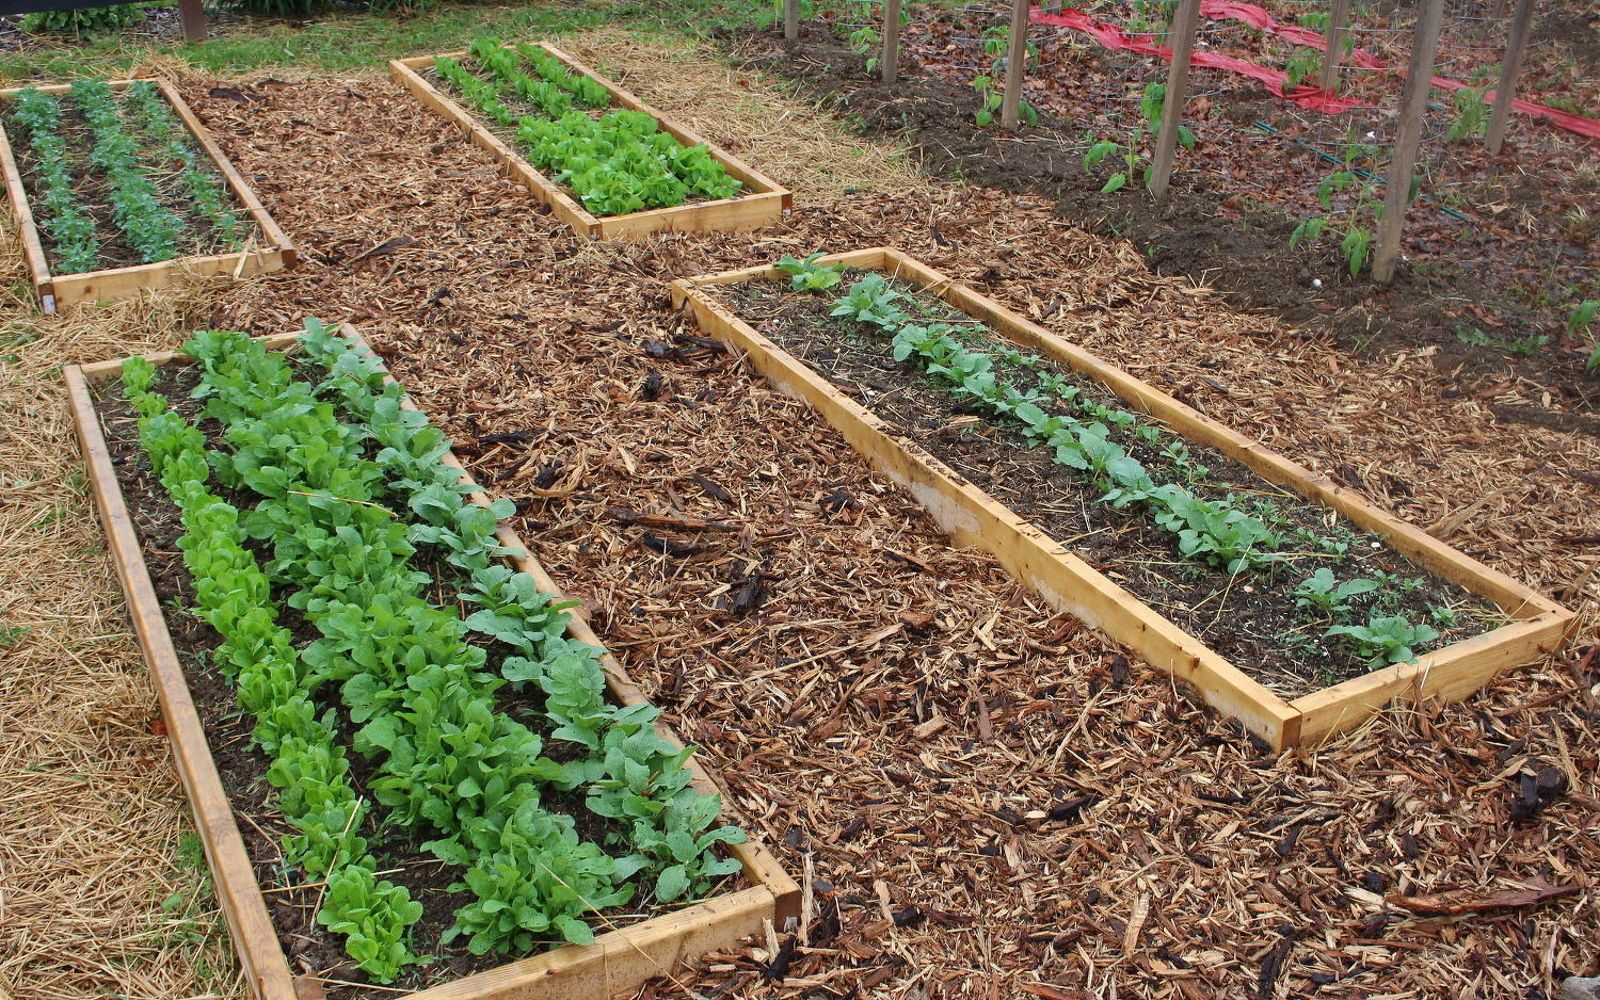 s 12 smarter ways to garden on a budget, container gardening, gardening, repurposing upcycling, Kill weeds using your own natural solutions